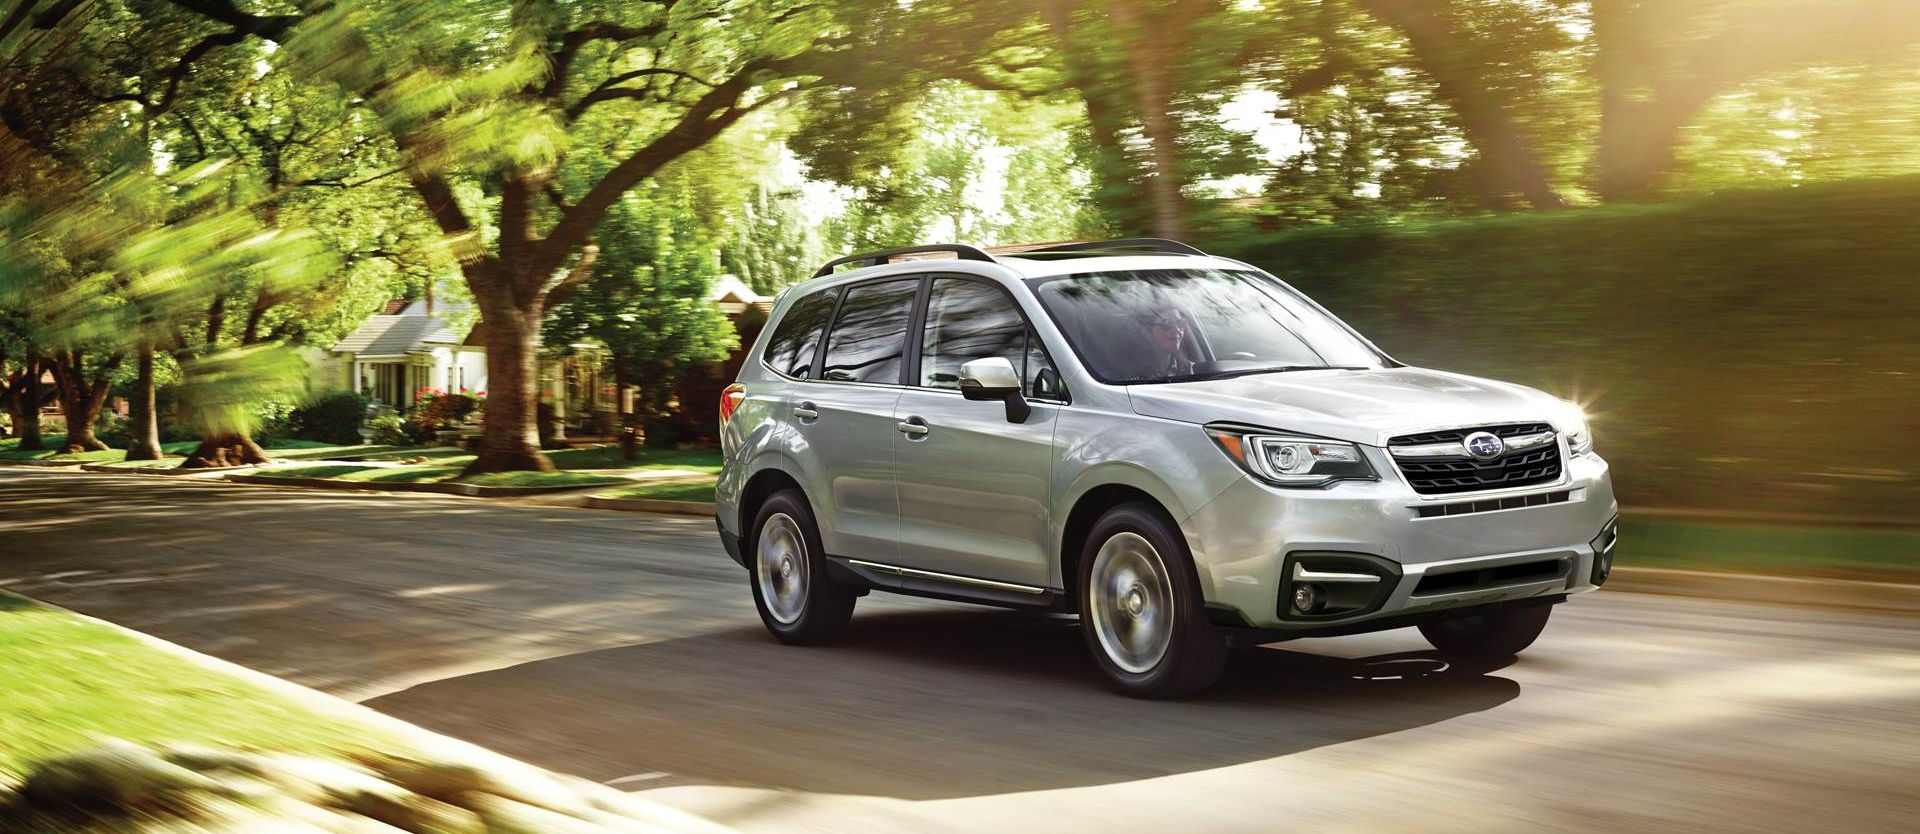 2018 Subaru Forester Leasing near Folsom, CA